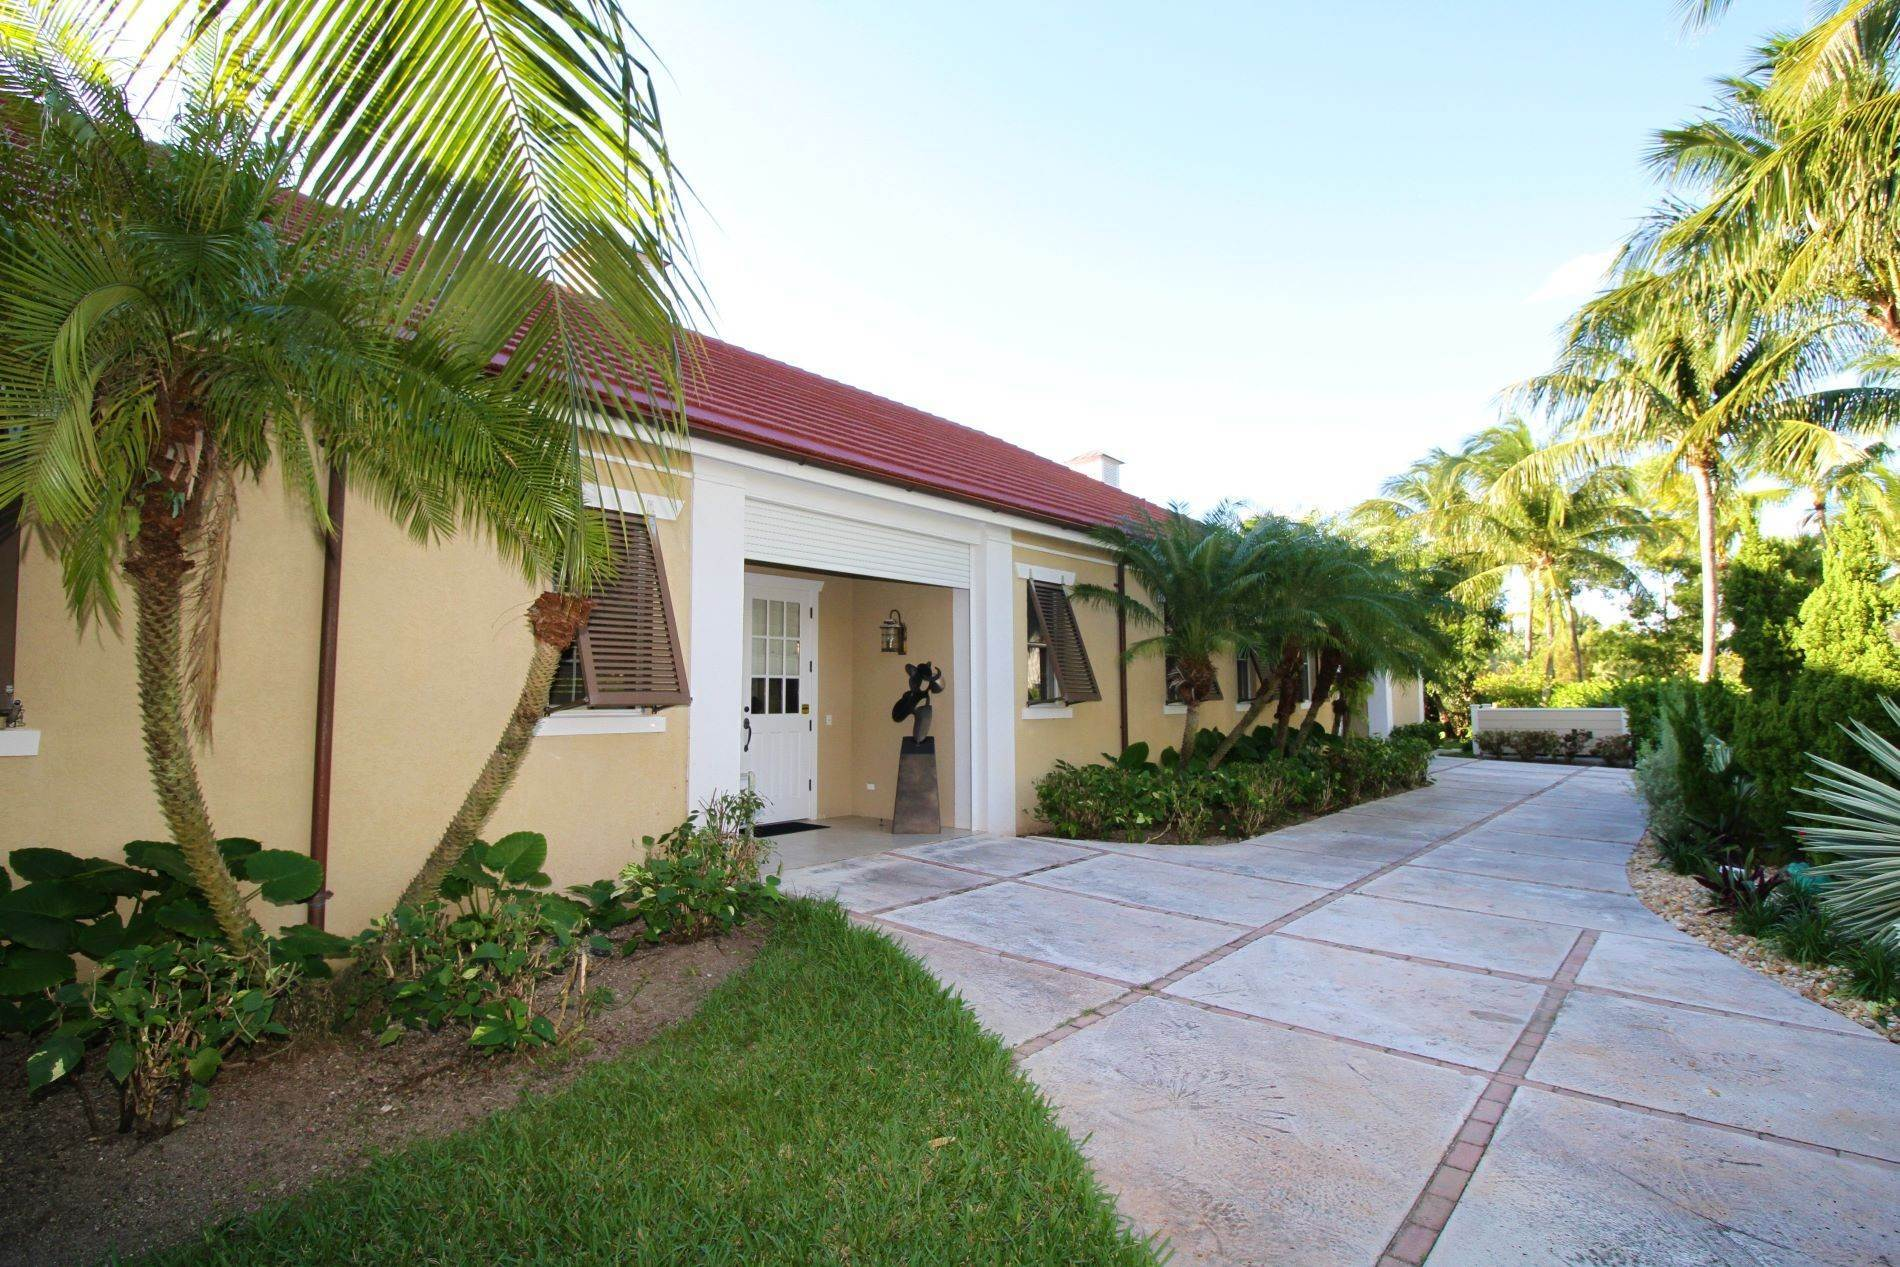 Single Family Homes por un Venta en Beautifully Designed Home in Luxury community of Old Fort Bay Old Fort Bay, Nueva Providencia / Nassau, Bahamas